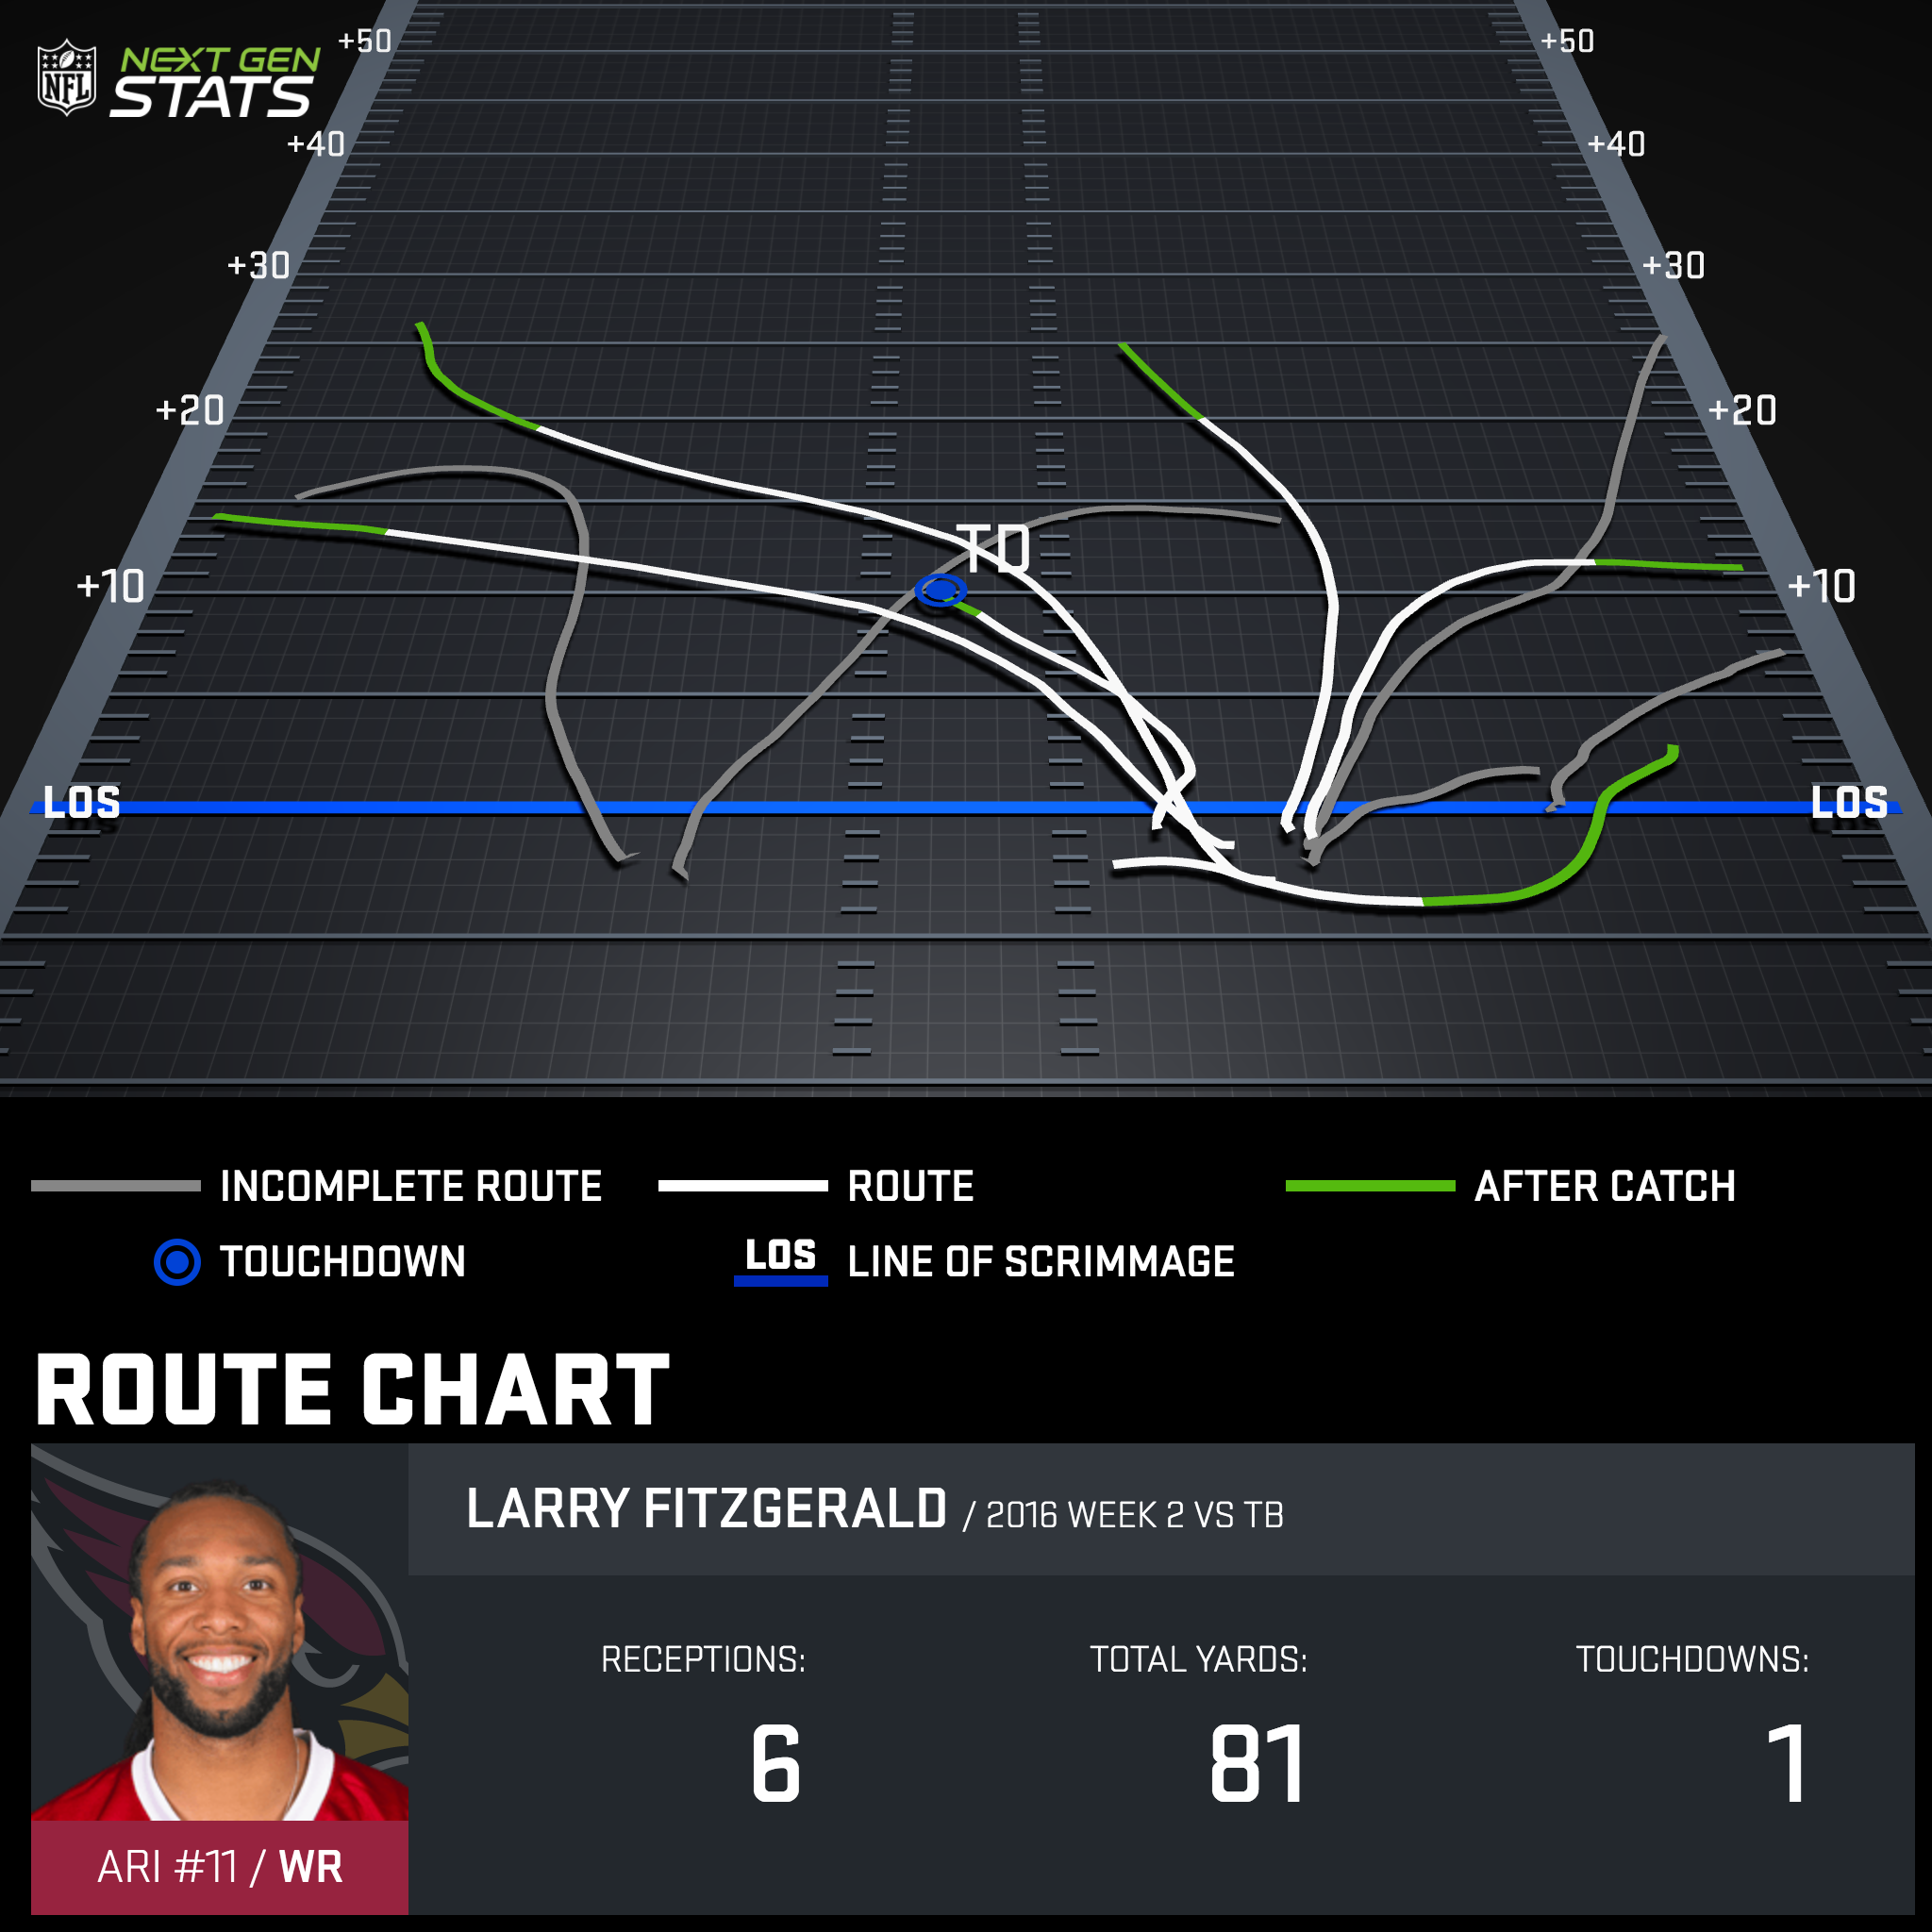 Larry Fitzgerald's Week 2 Next Gen Stats route chart